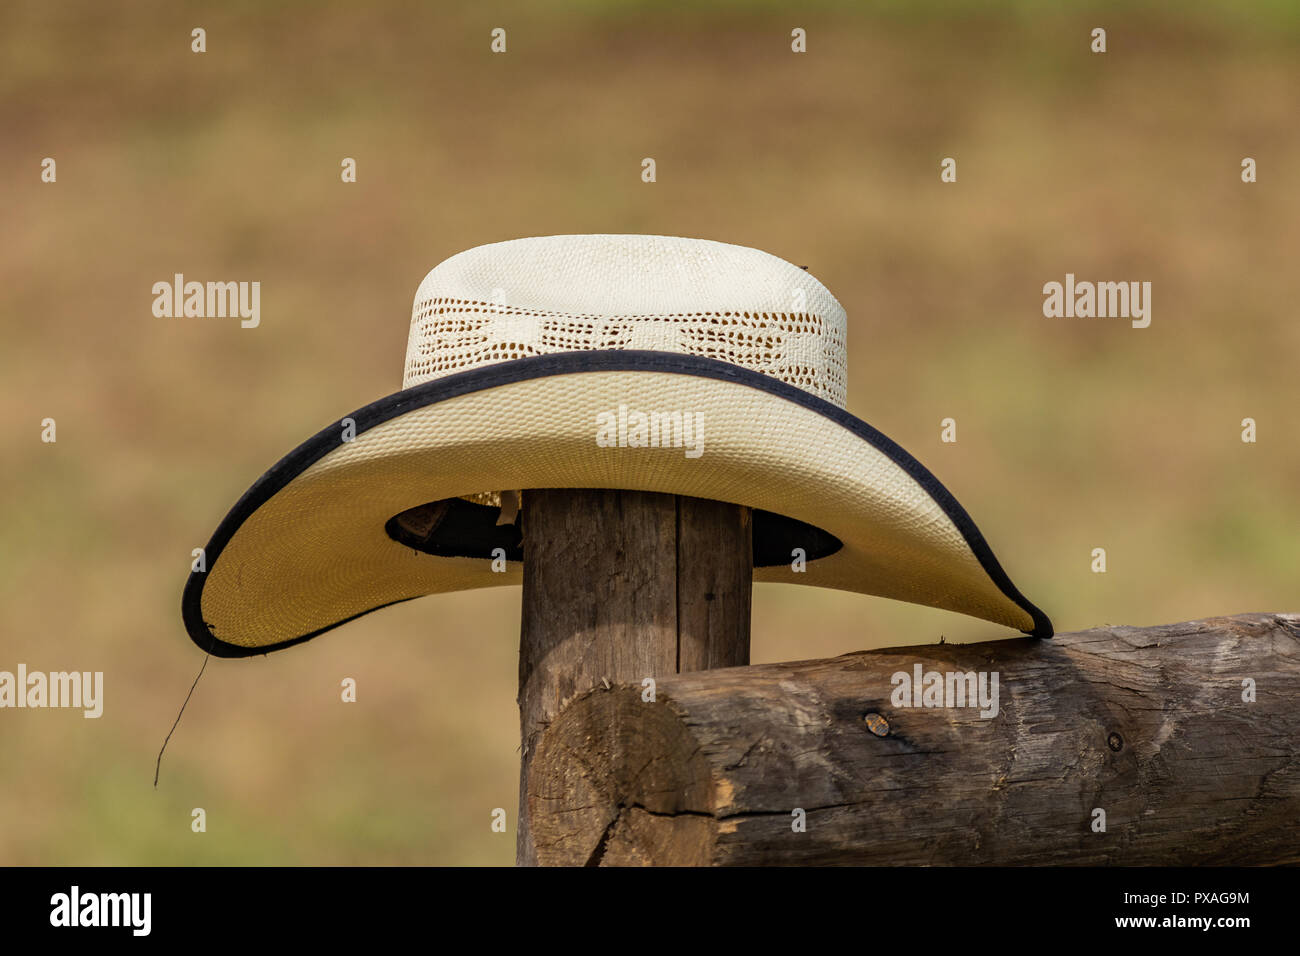 66b52bd22 Rodeo Western Stock Photos & Rodeo Western Stock Images - Alamy